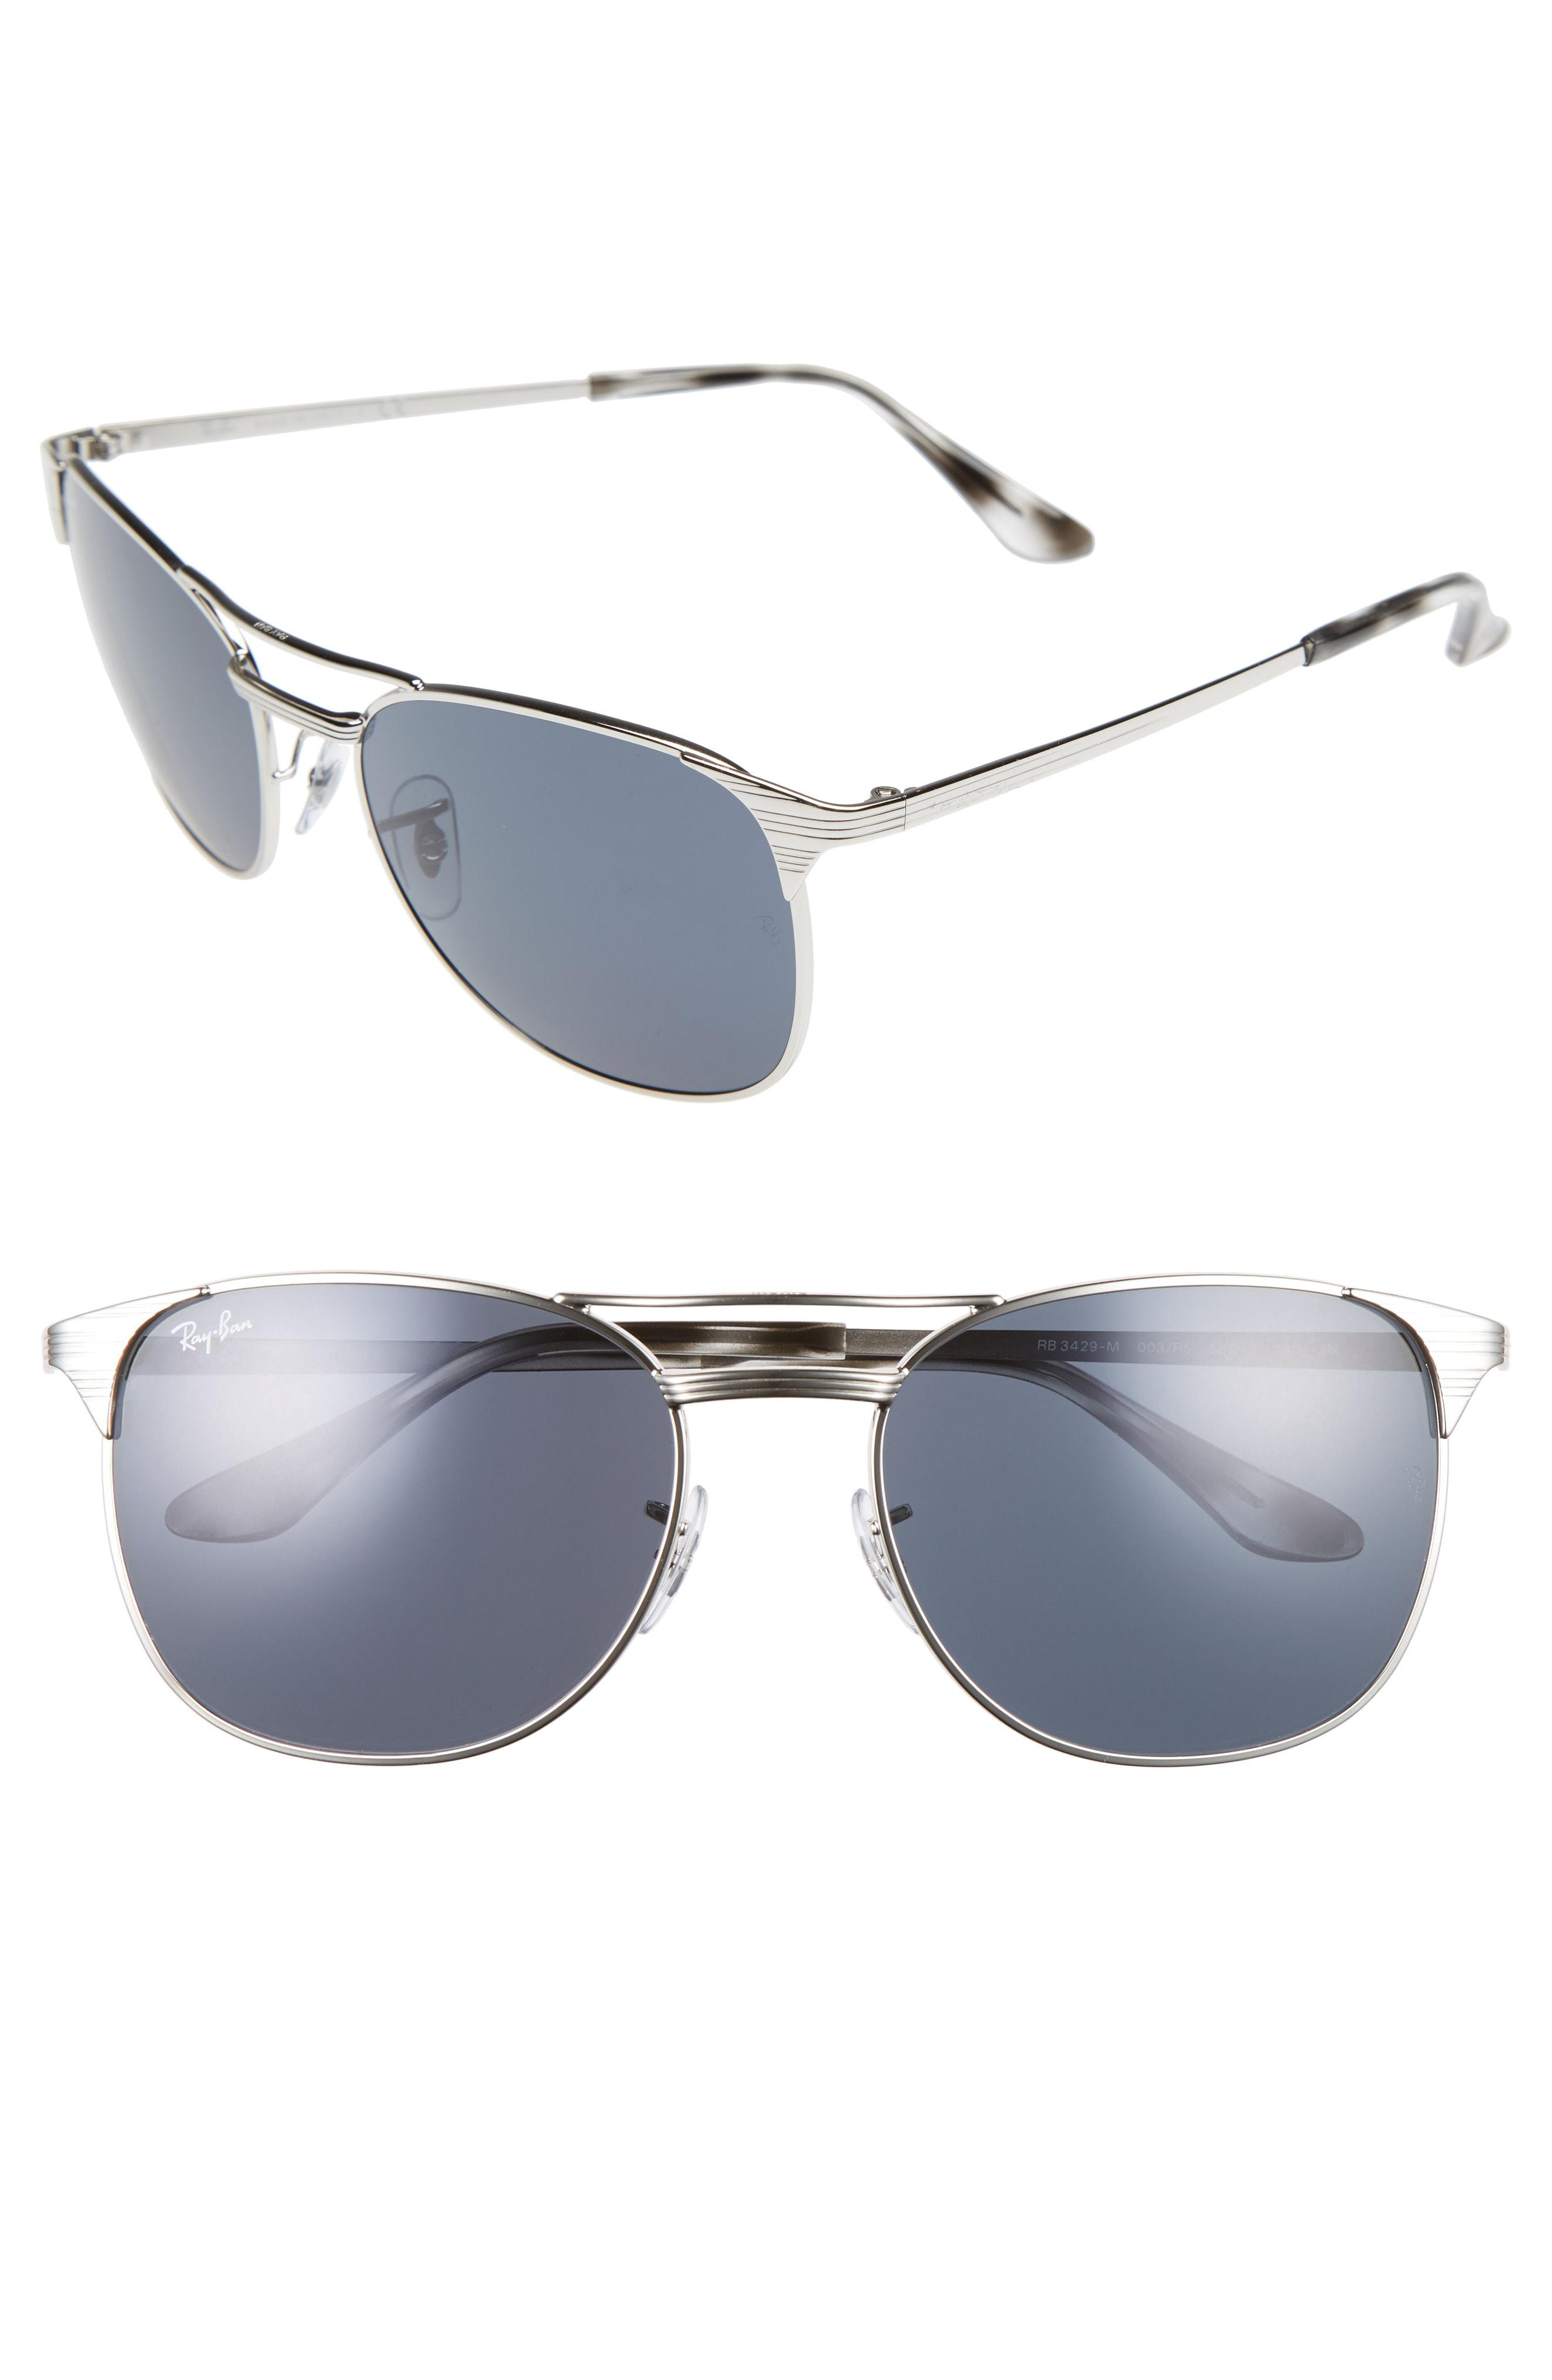 83bcd13239 Lyst - Ray-Ban Signet 58mm Square Sunglasses - for Men